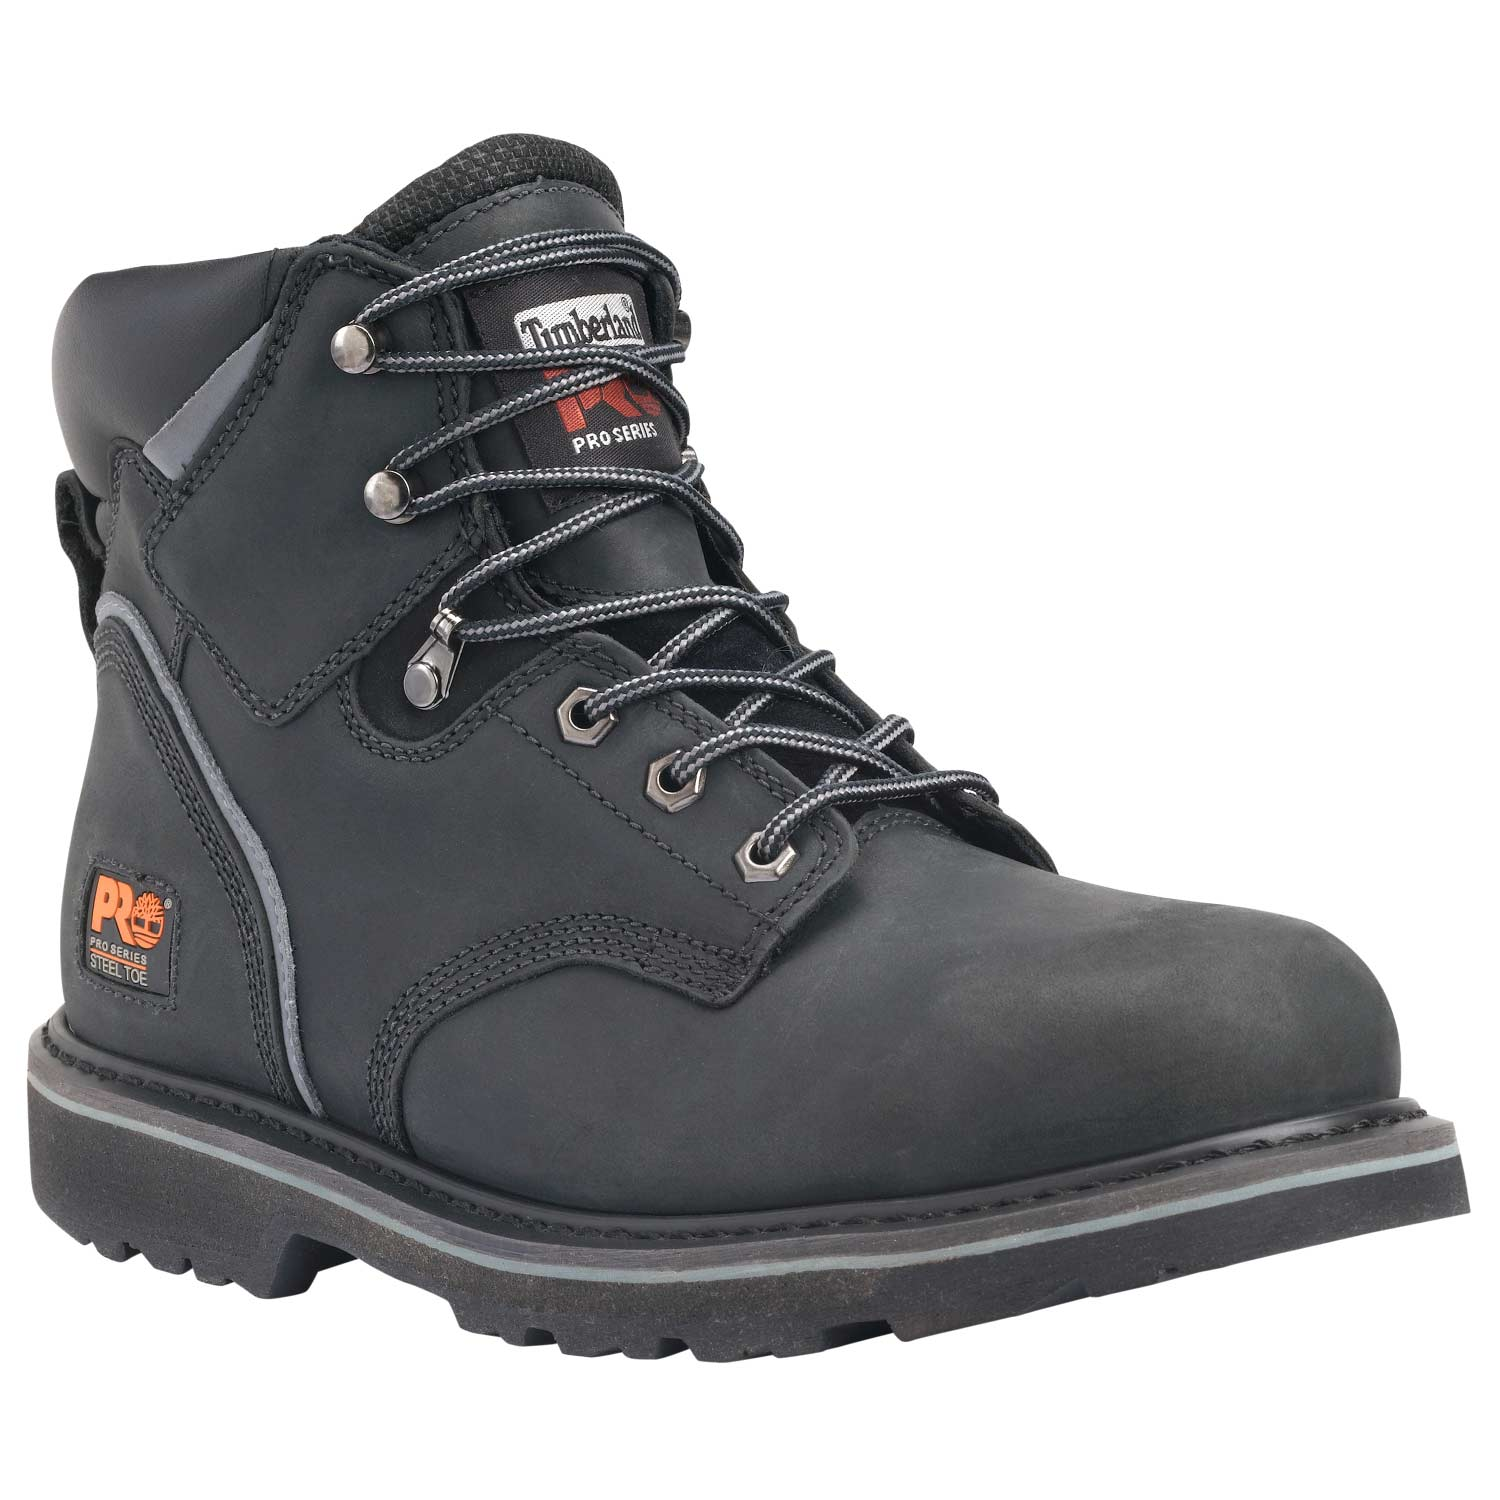 Work Boots Steel Toe fQUDgTO9